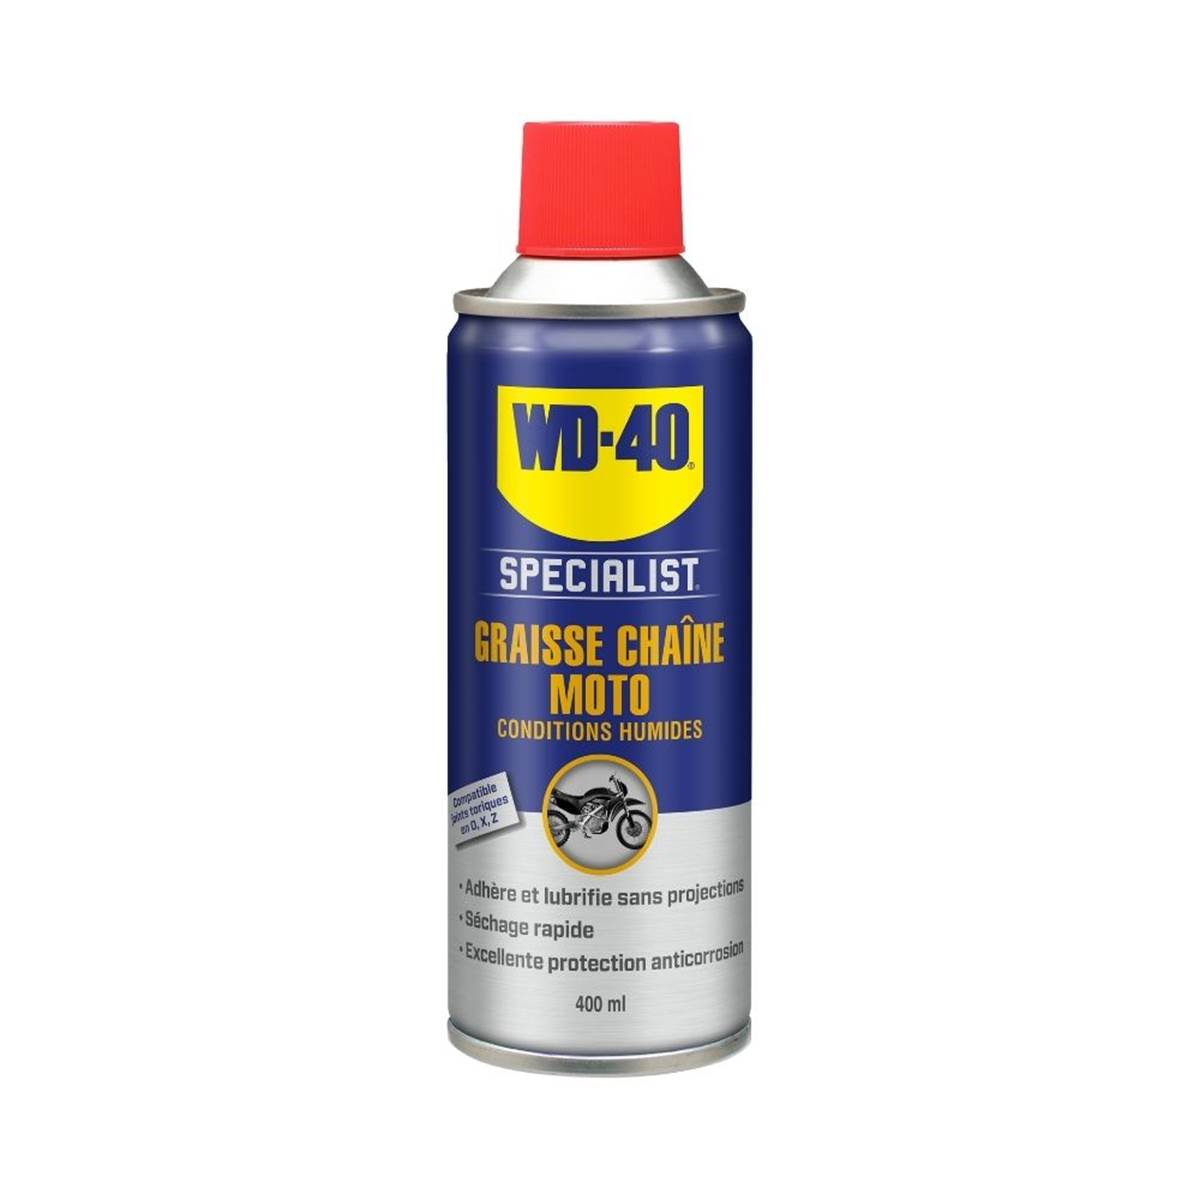 Graisse chaîne moto conditions humides WD40 400ml